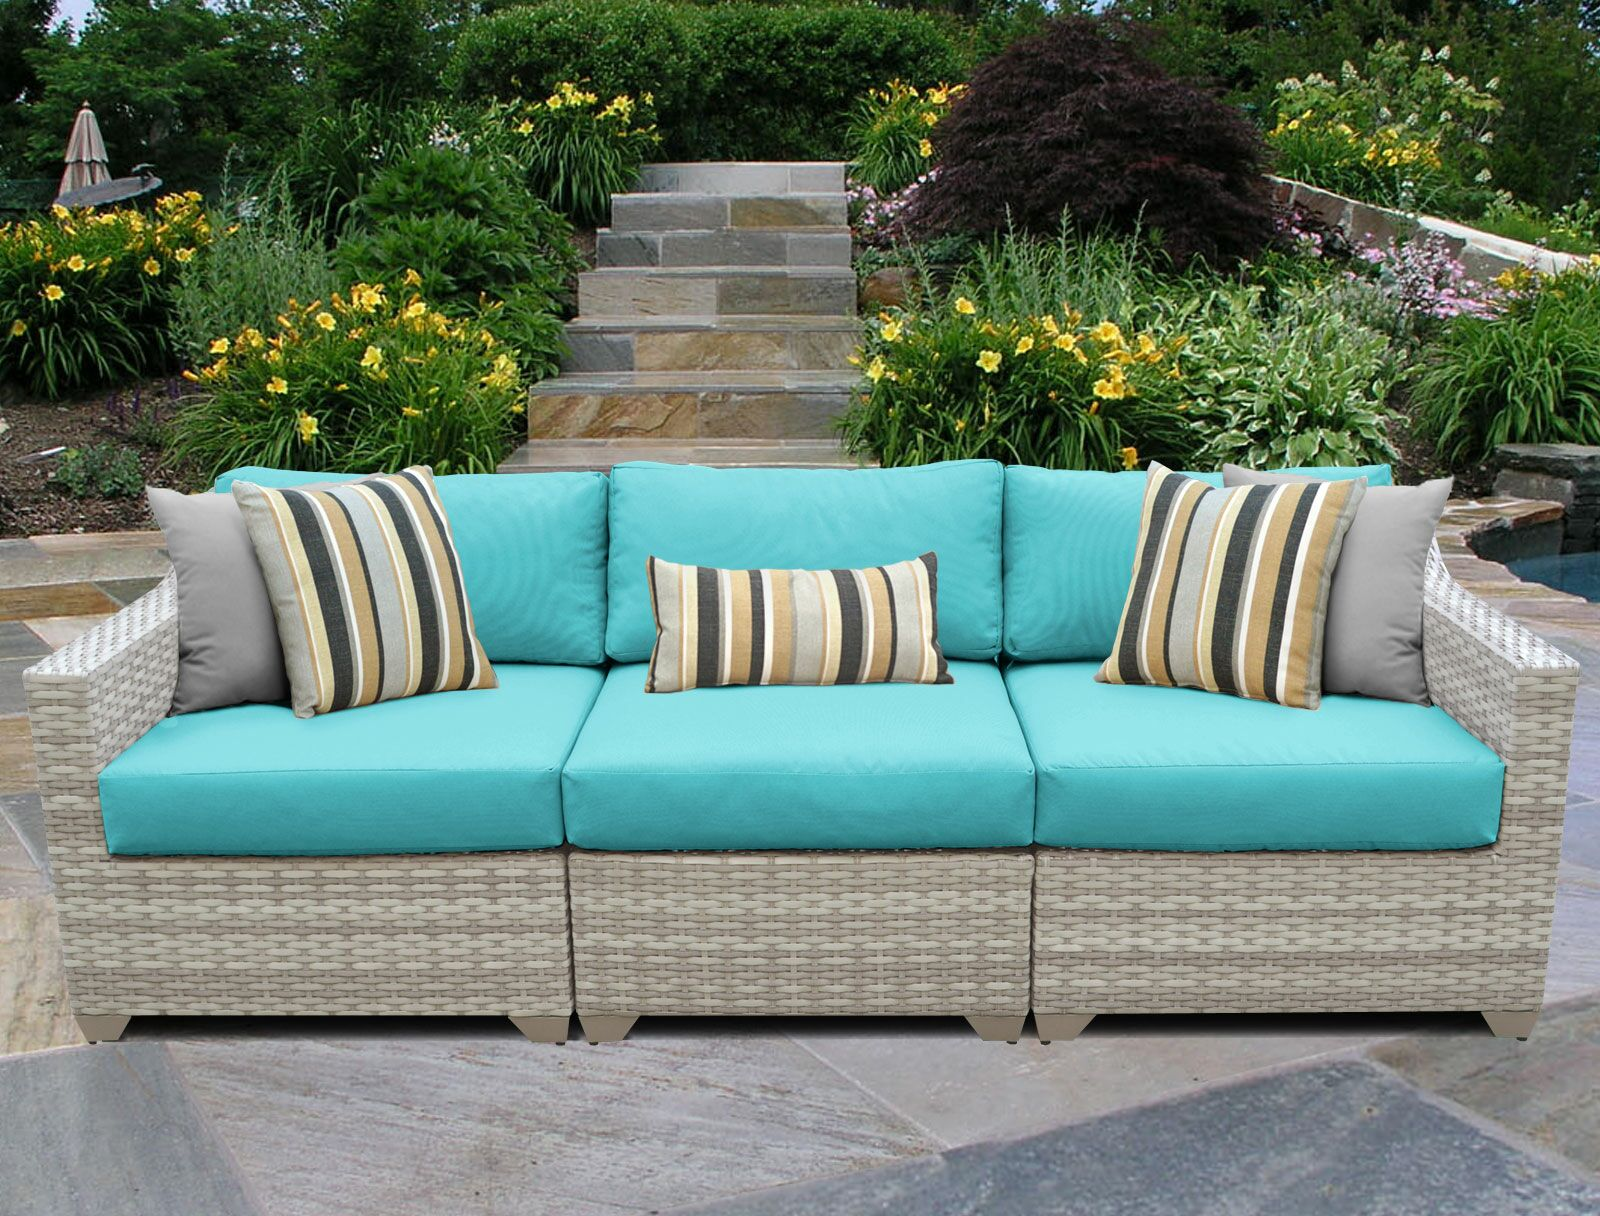 Fairmont Left/Right Armless Sectional Piece with Cushions Color: Aruba